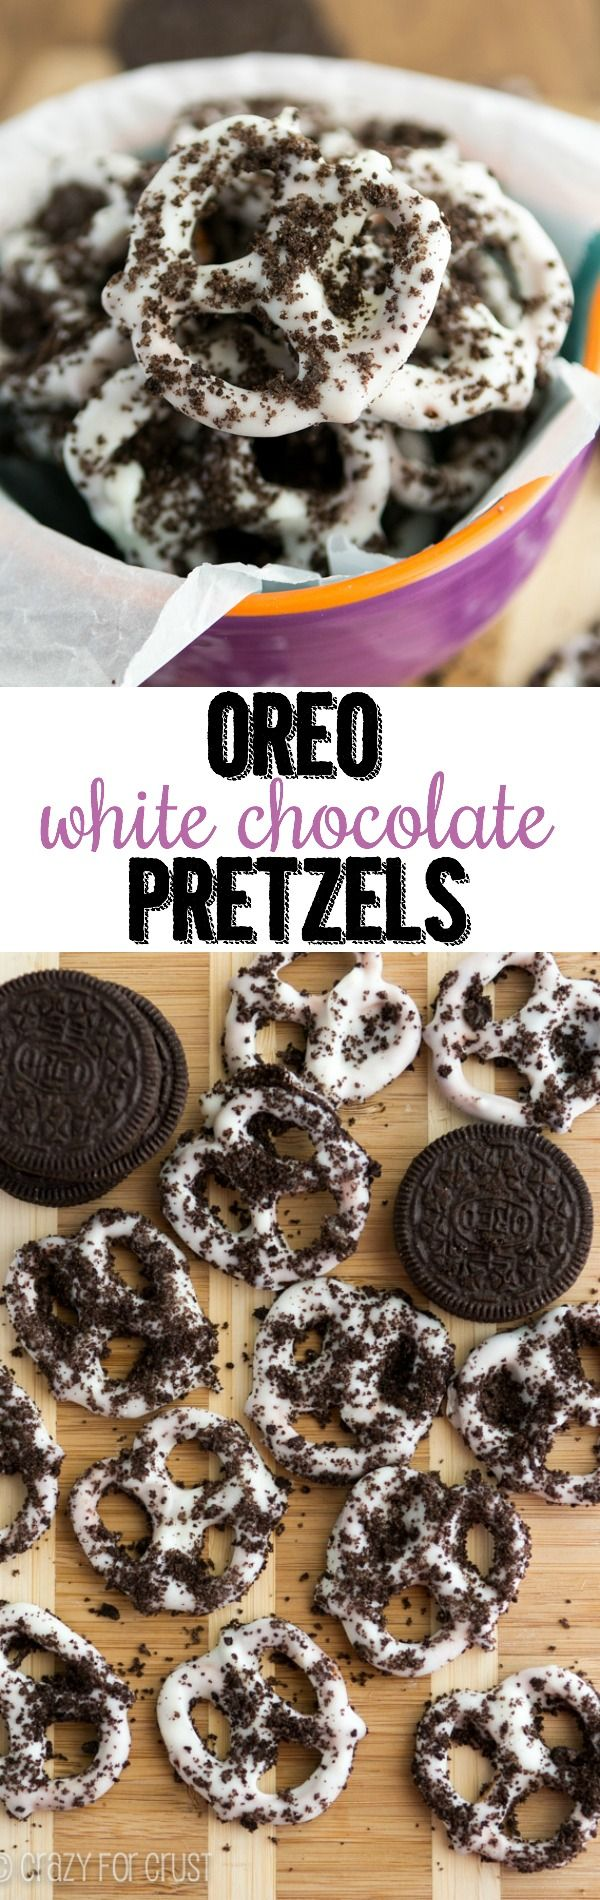 Oreo White Chocolate Pretzels - an easy foolproof treat using chocolate dipped pretzels and Oreo cookies! Great for snacking or homemade gifts!